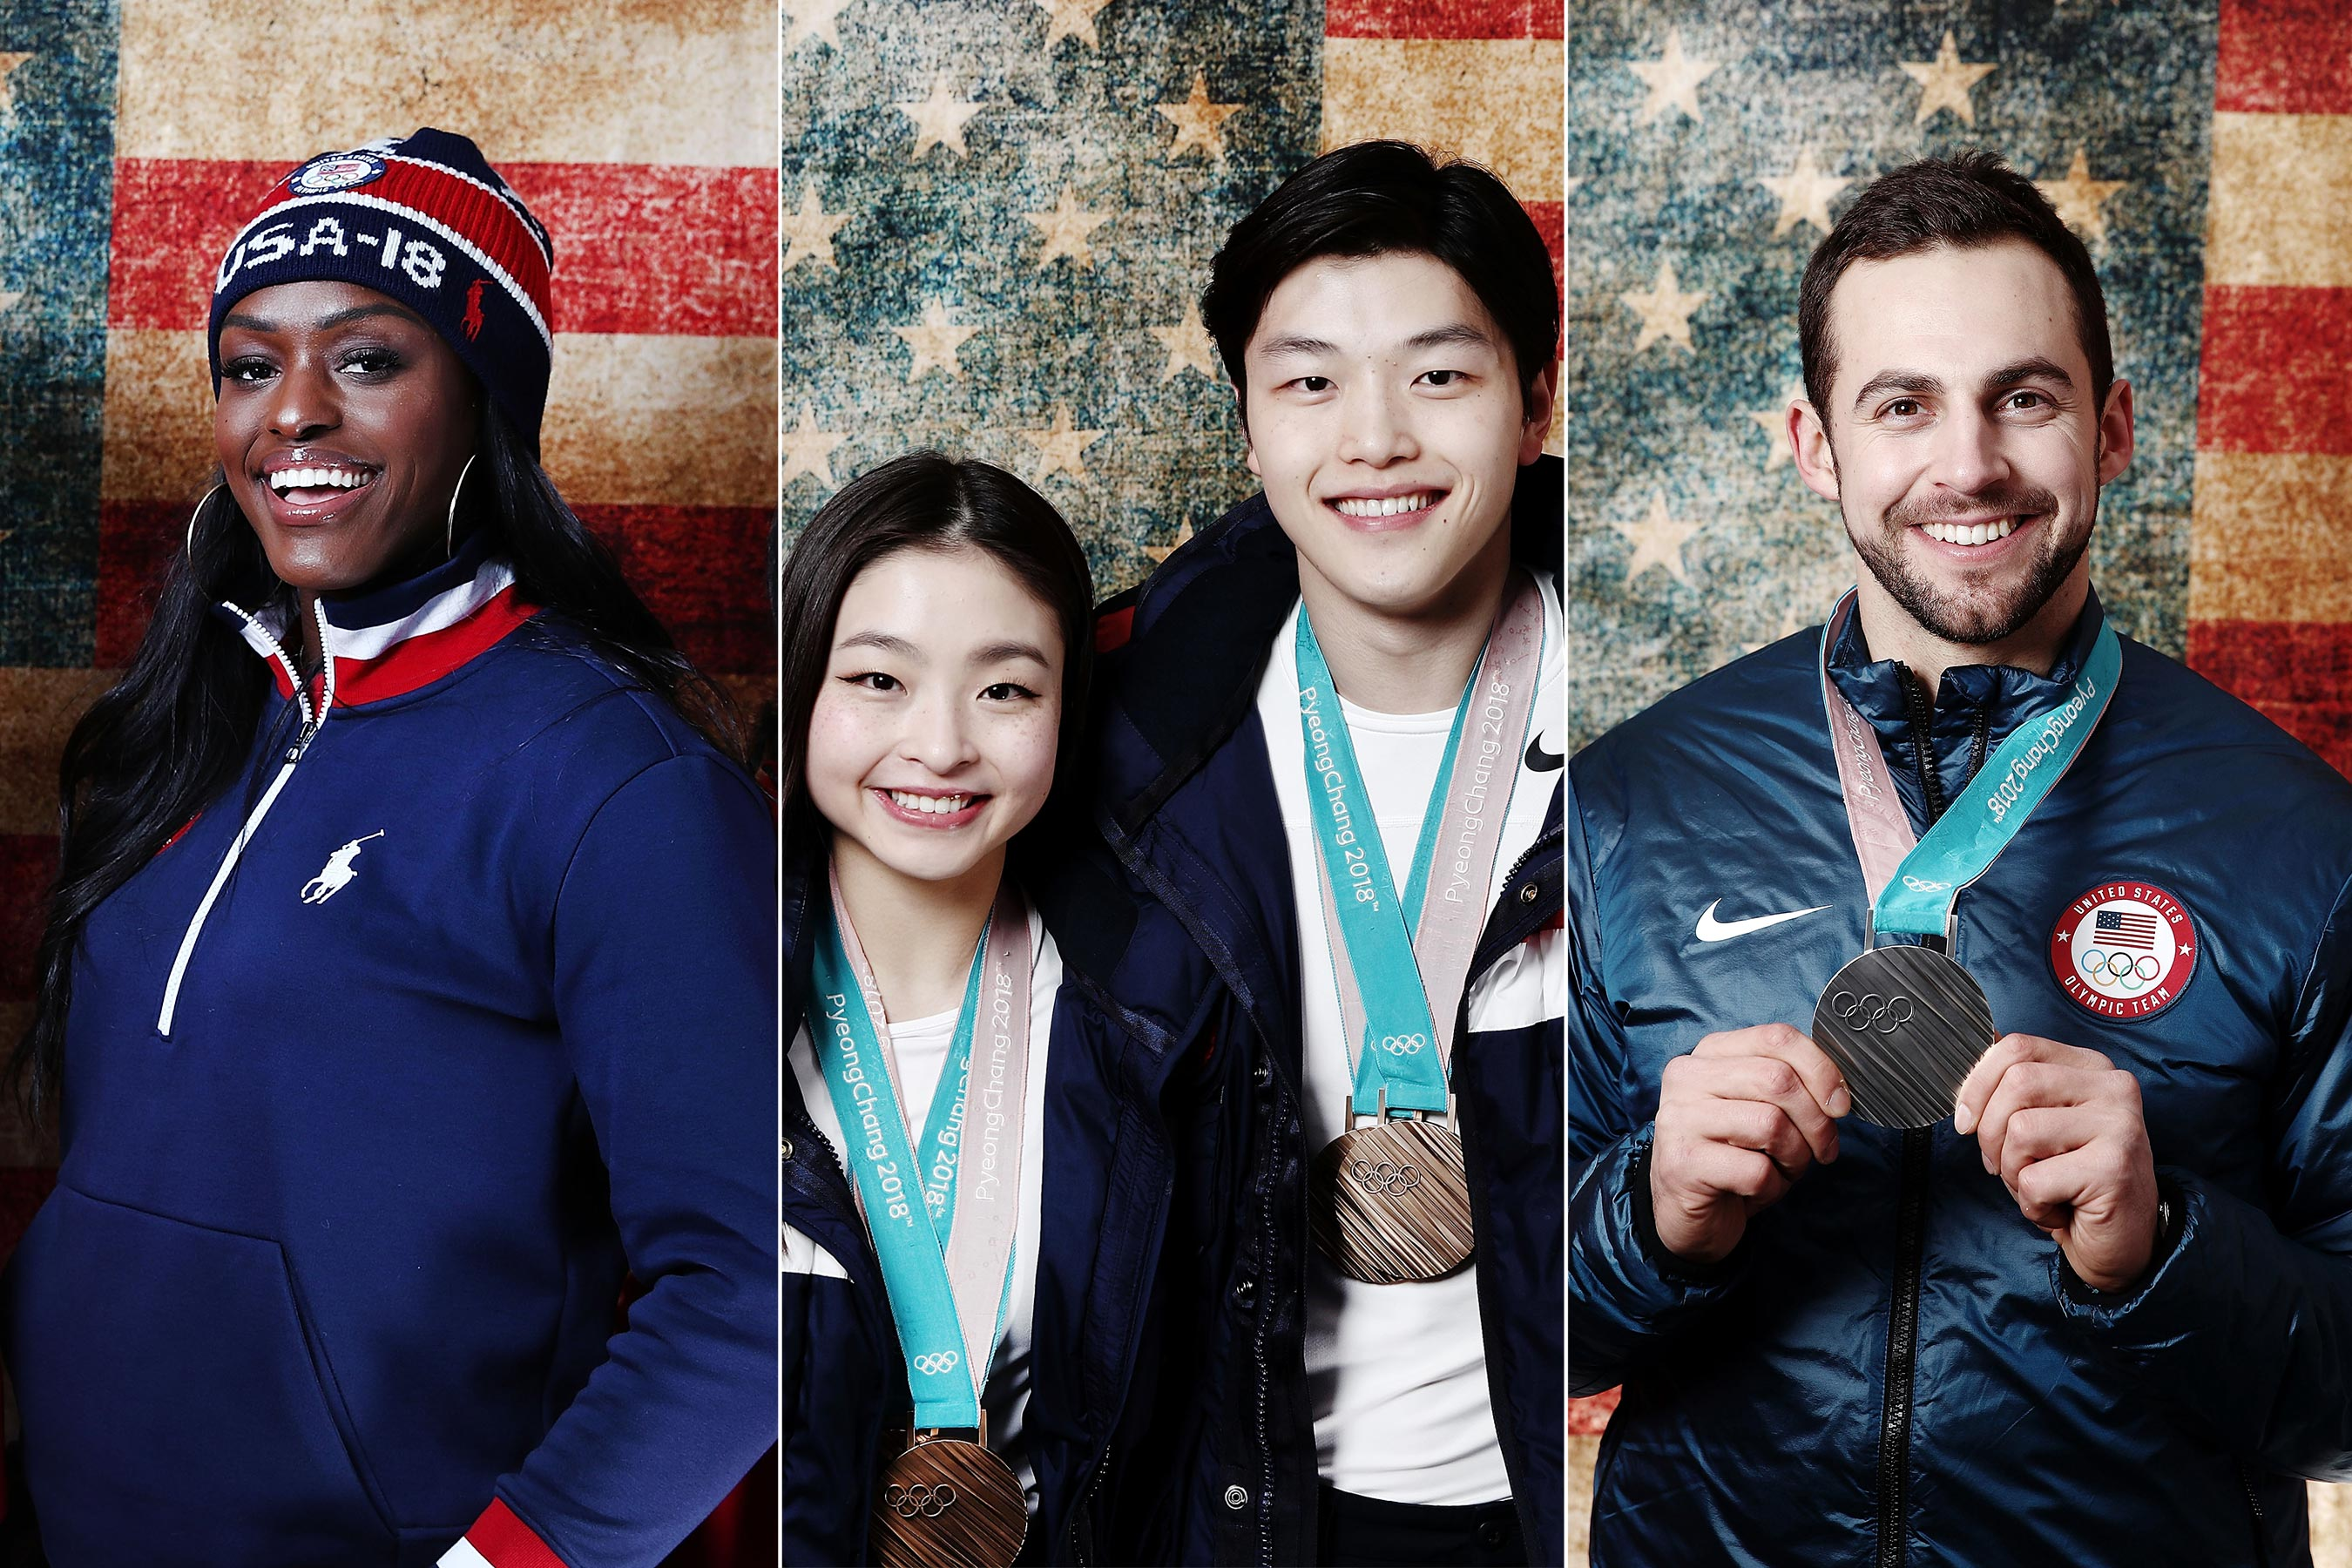 Olympians from PyeongChang who want to do Dancing With the Stars